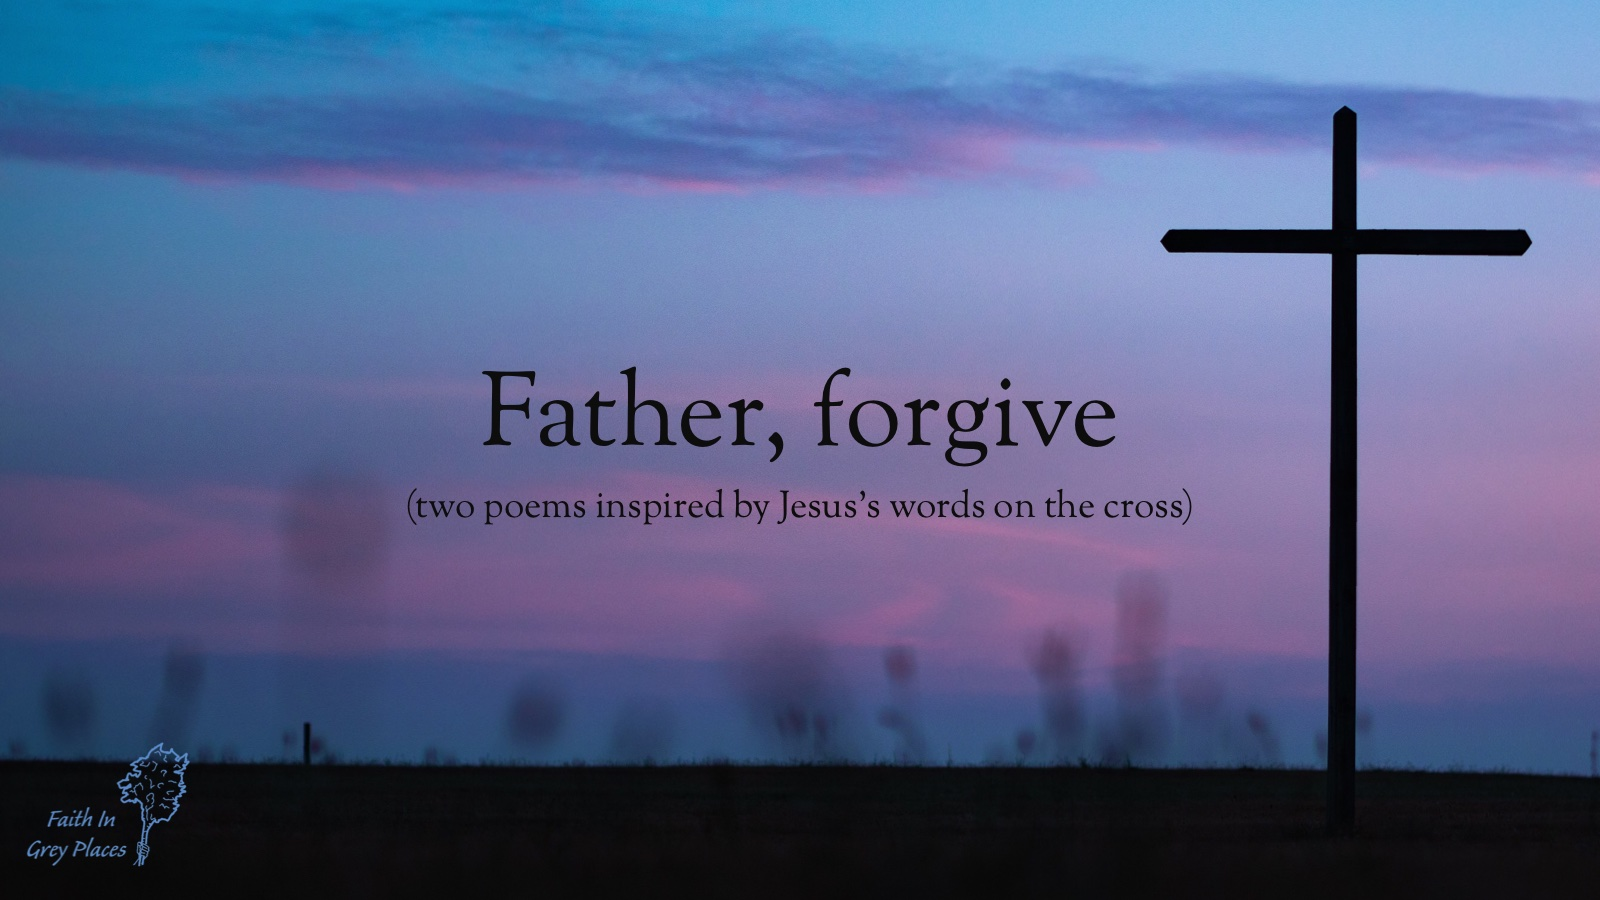 A single cross standing on a dark plain, silhouetted on a blue and purple sunset, with the words: Father, forgive (two poems inspired by Jesus's words on the cross) Faith in Grey Places